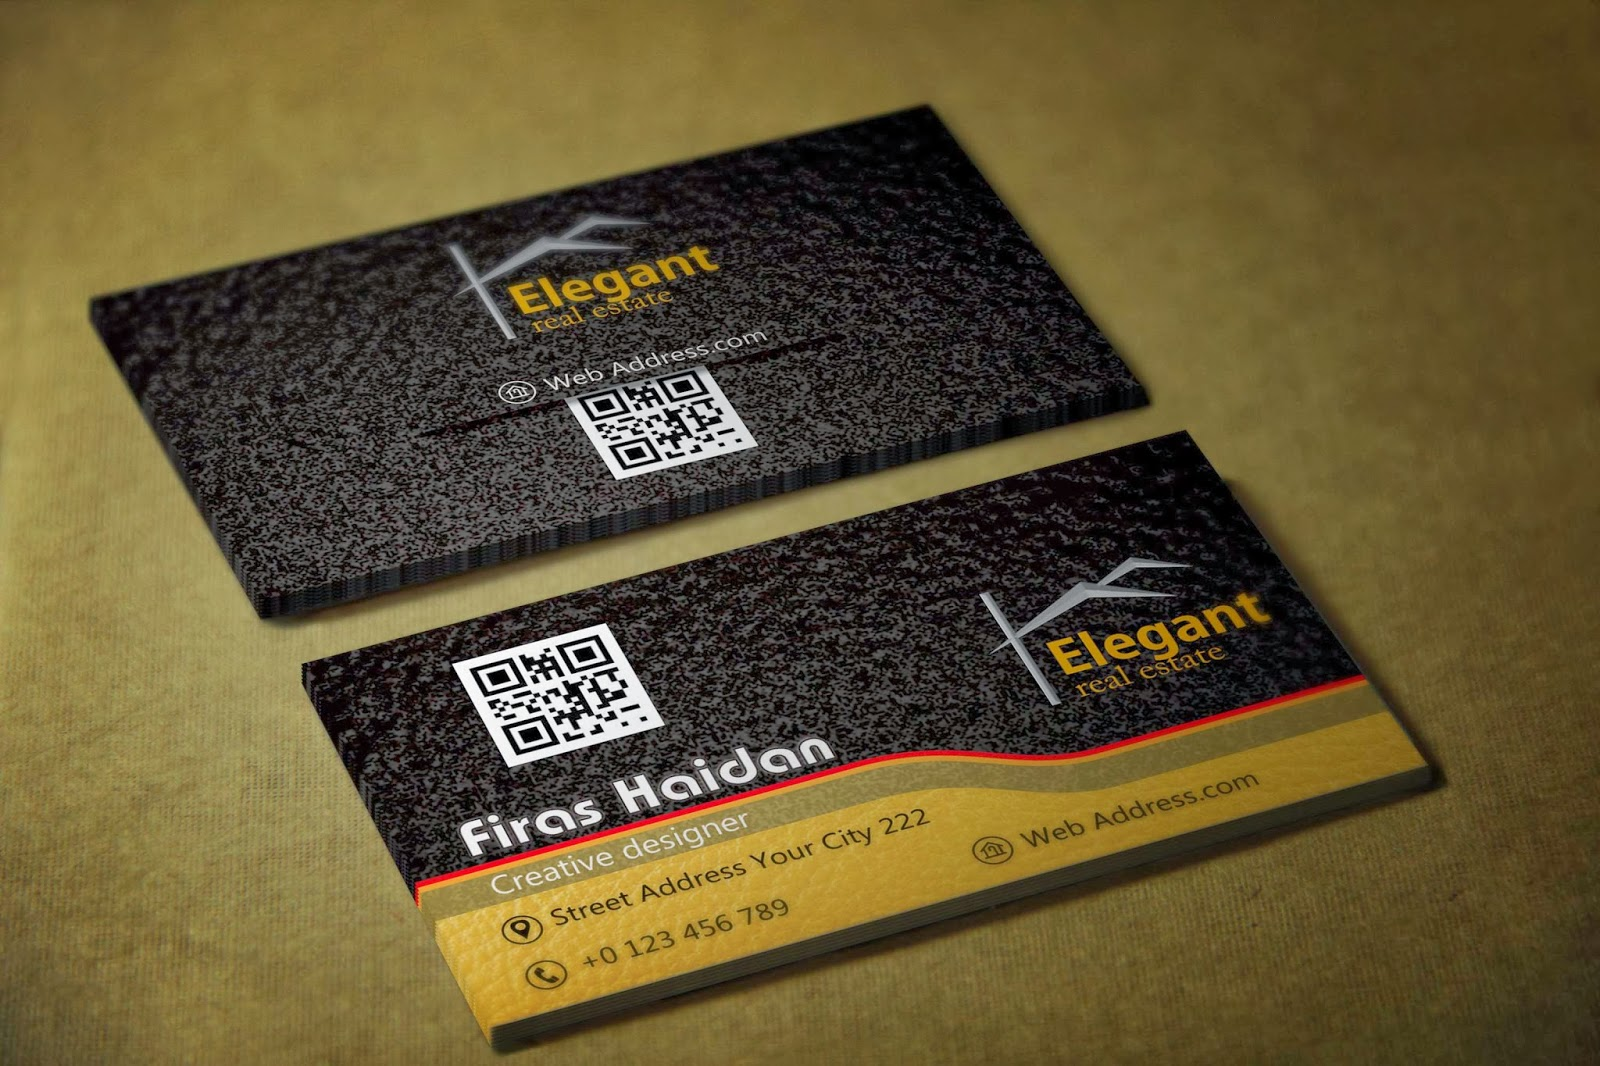 Coreldraw visiting card - Real Estate Business Cards